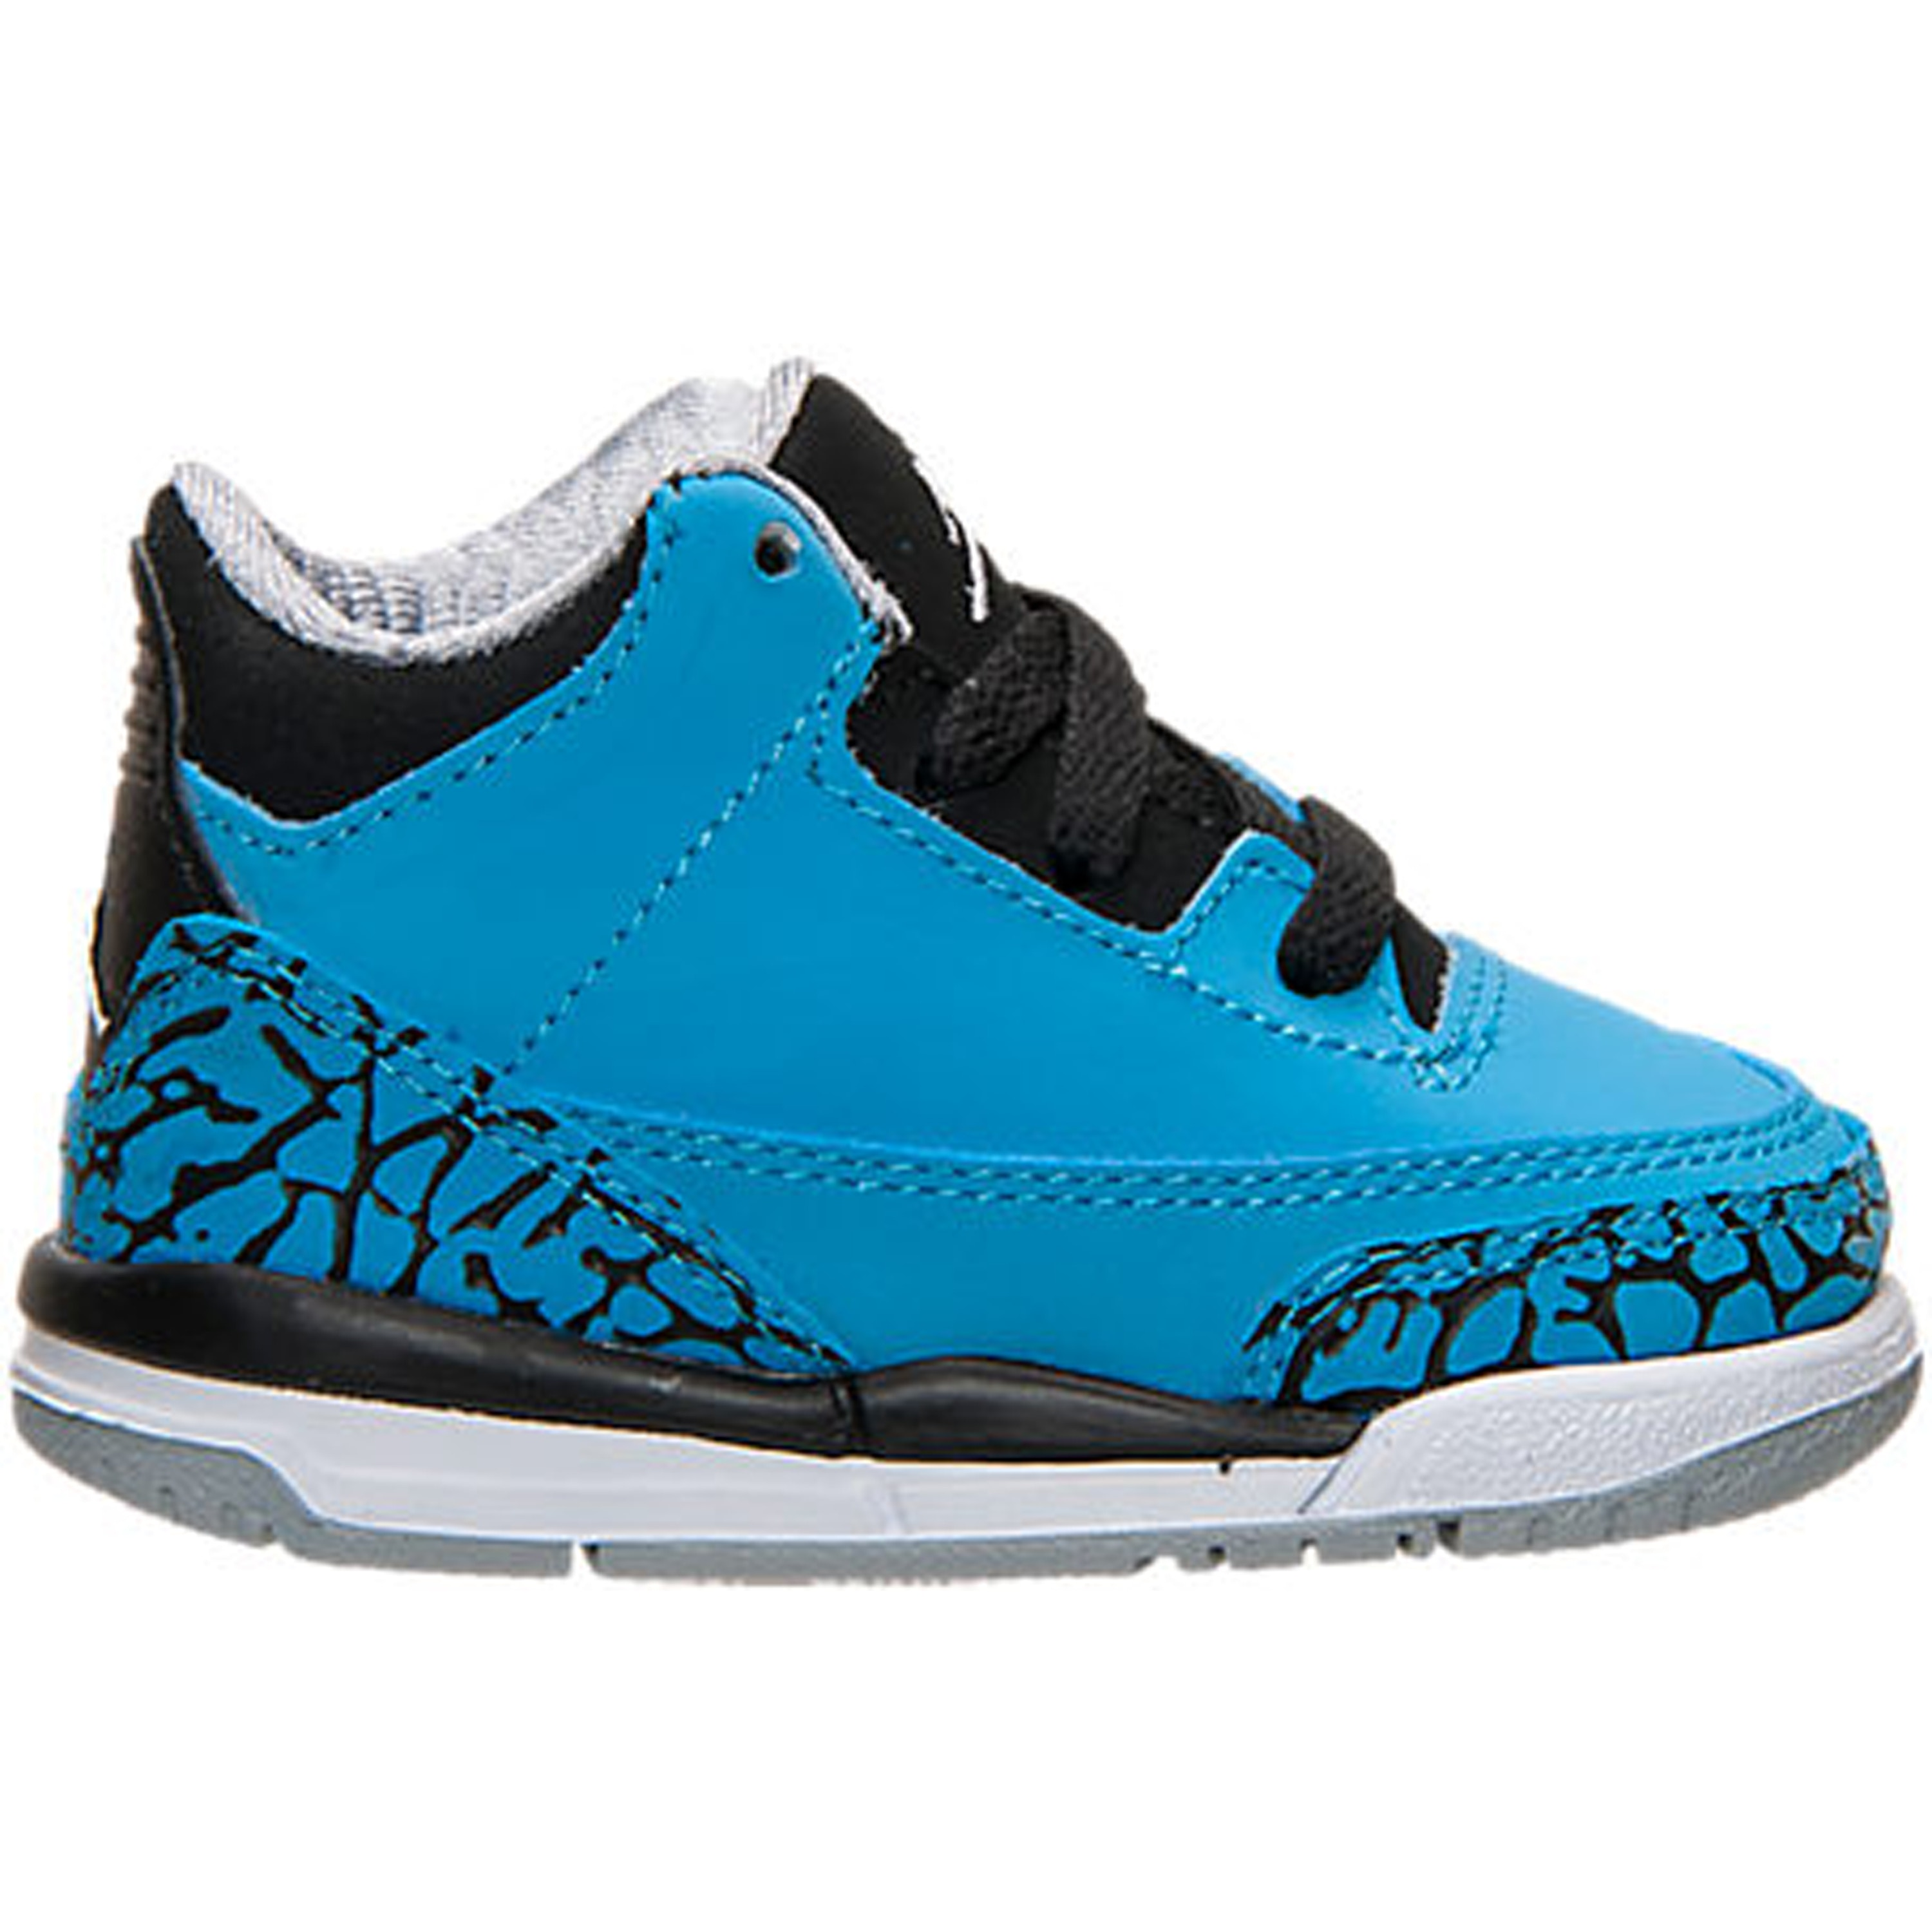 Jordan 3 Retro Powder Blue (TD) (832033-406)